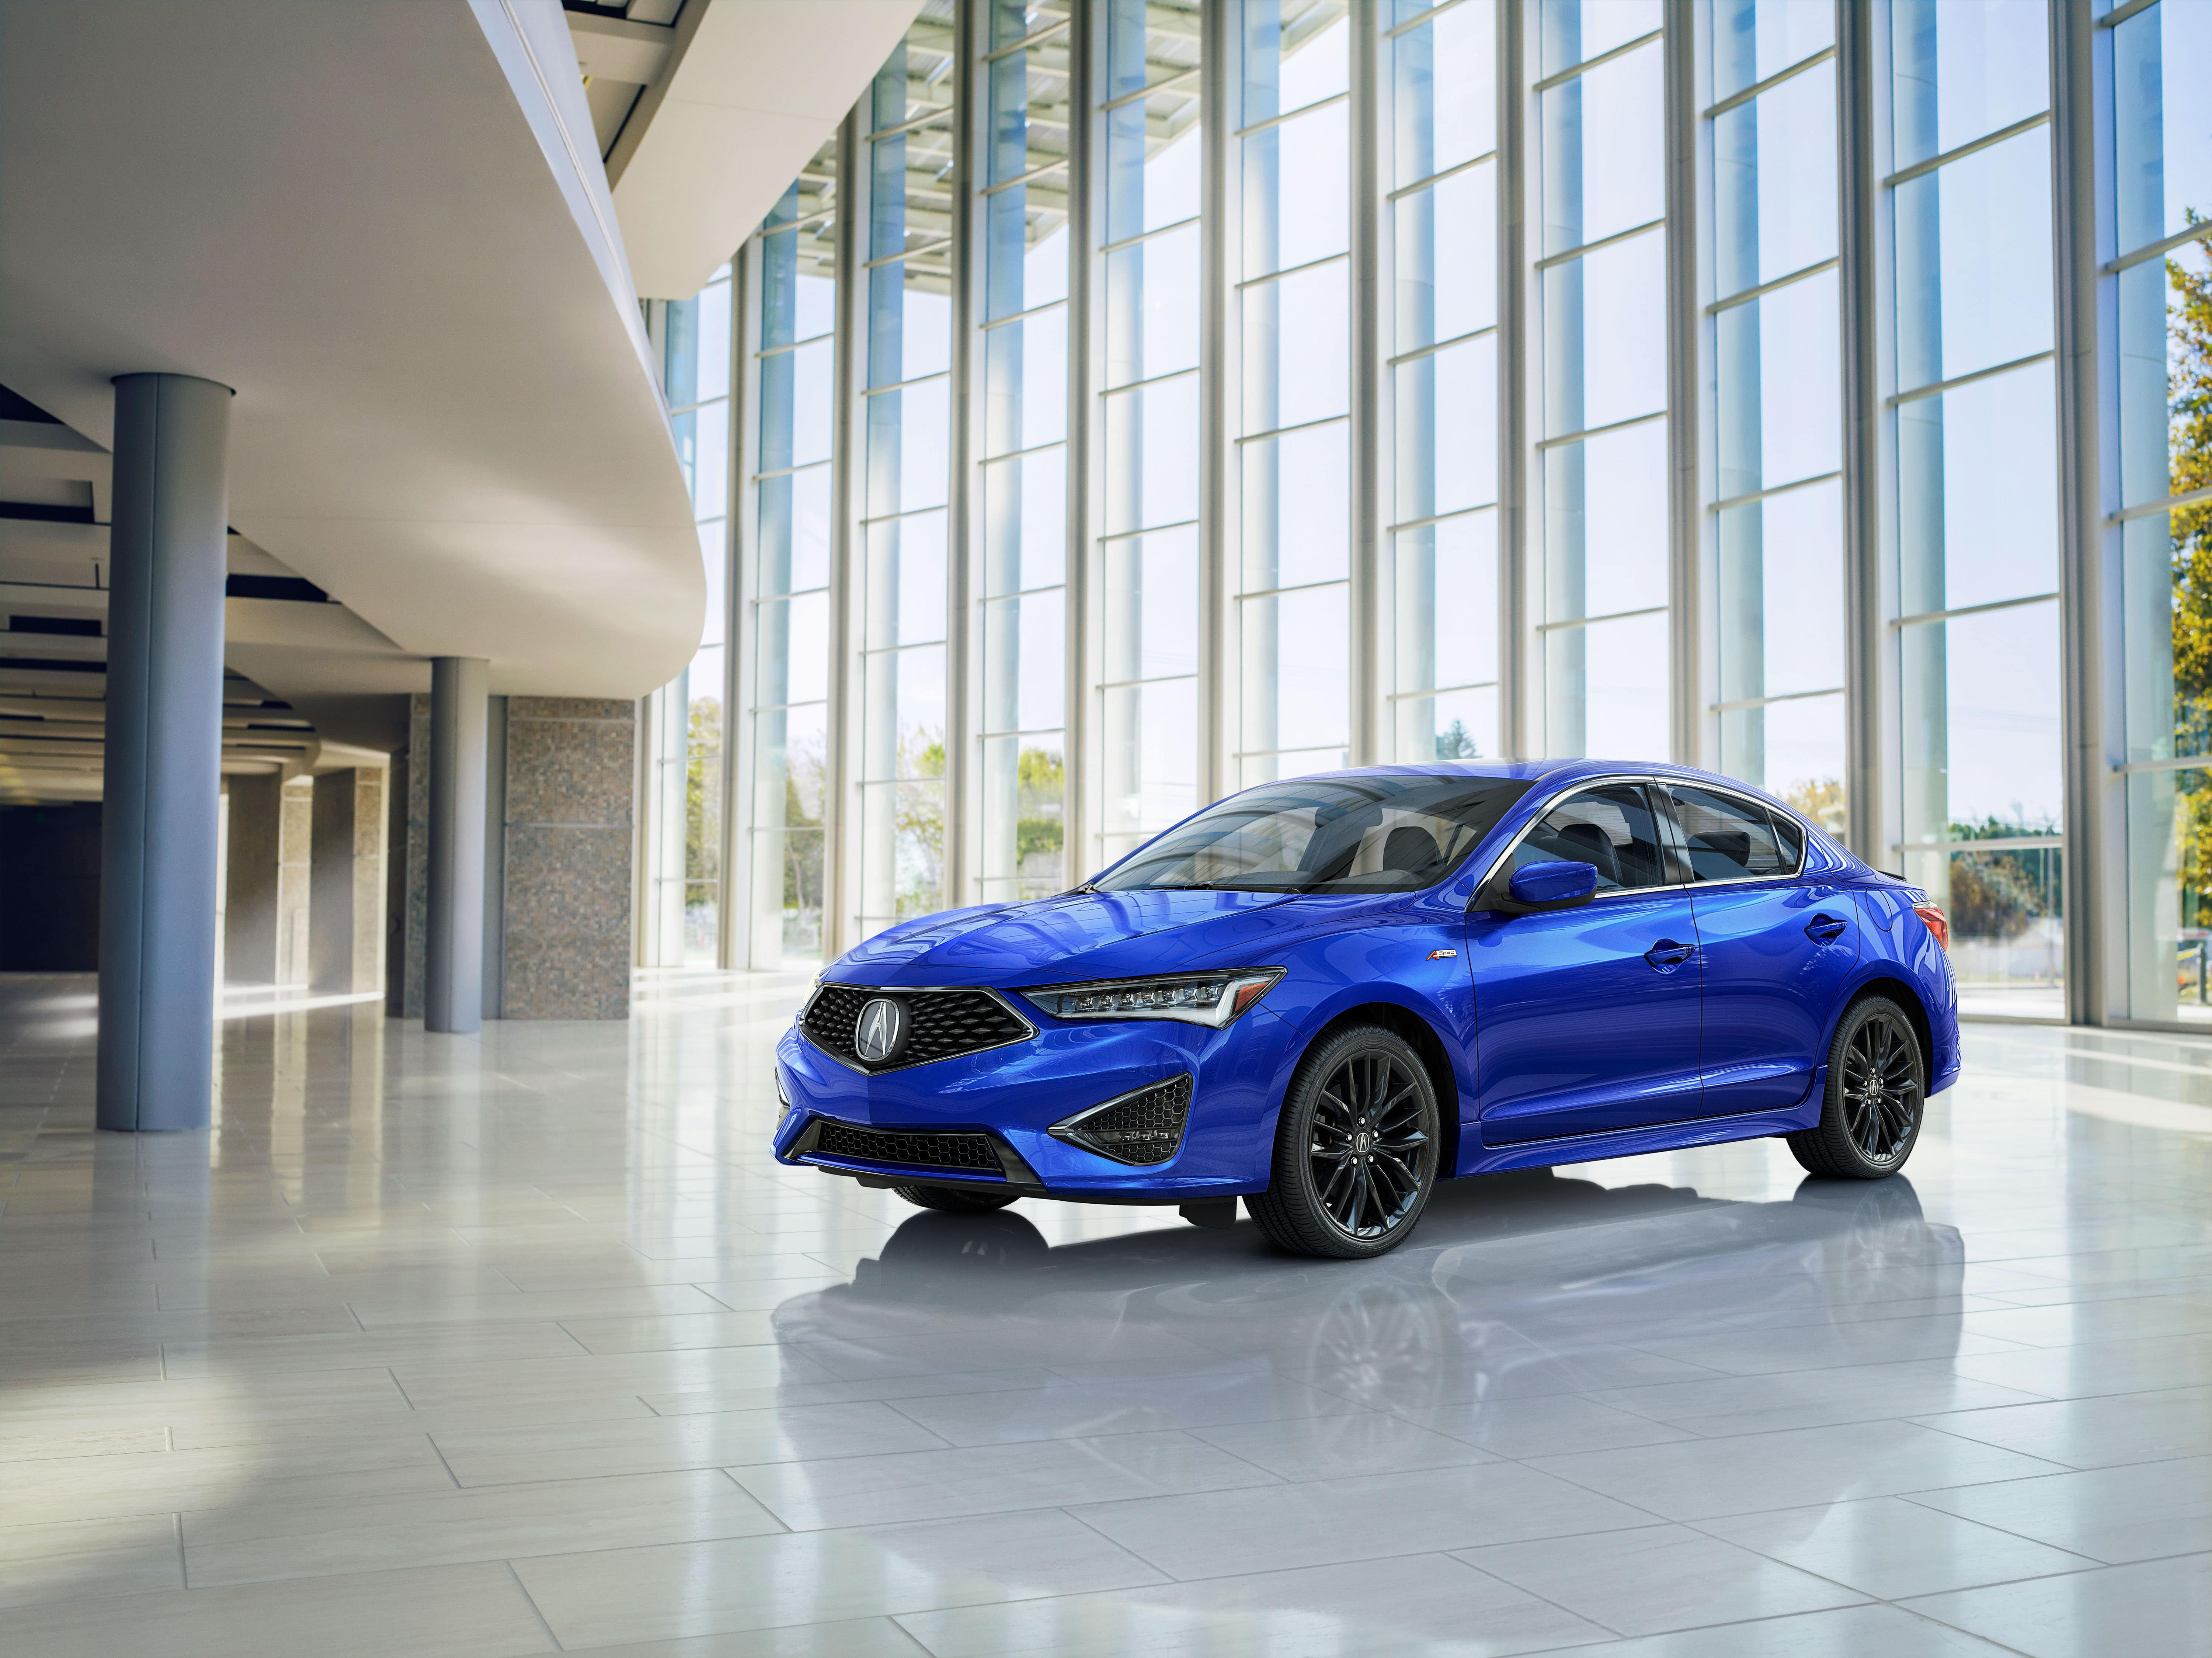 2019 Acura ILX: New Look, More Goodies, Wants To Play